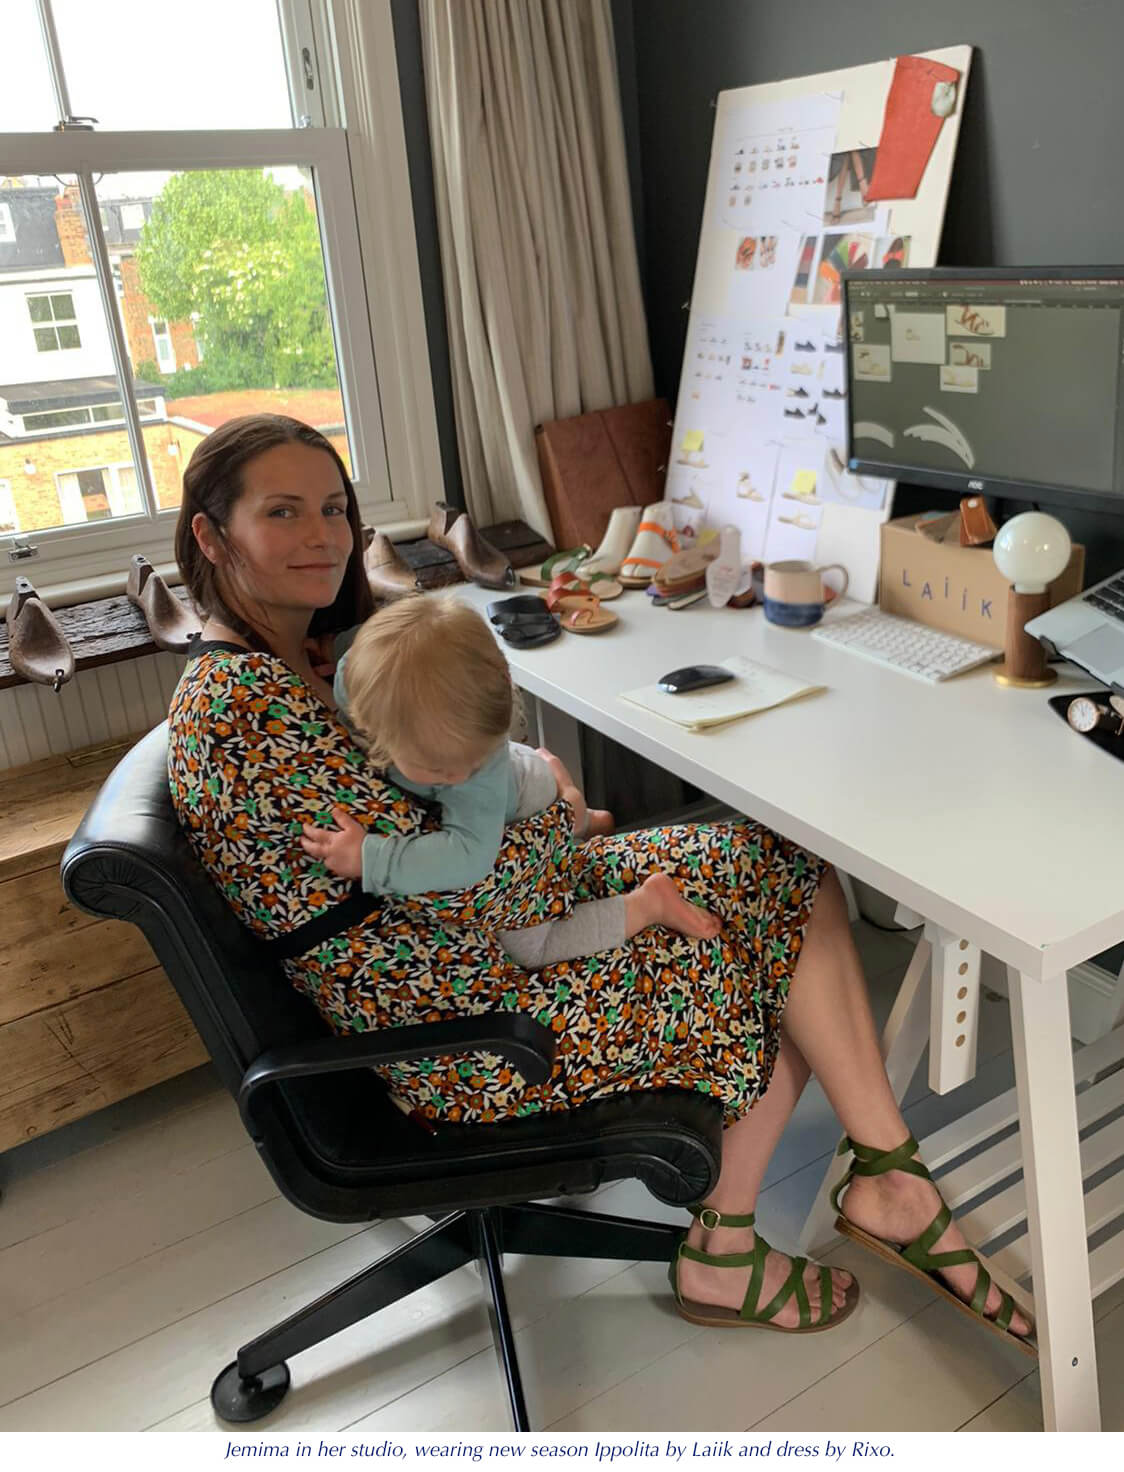 Jemima with daughter in her design studio, greek sandals